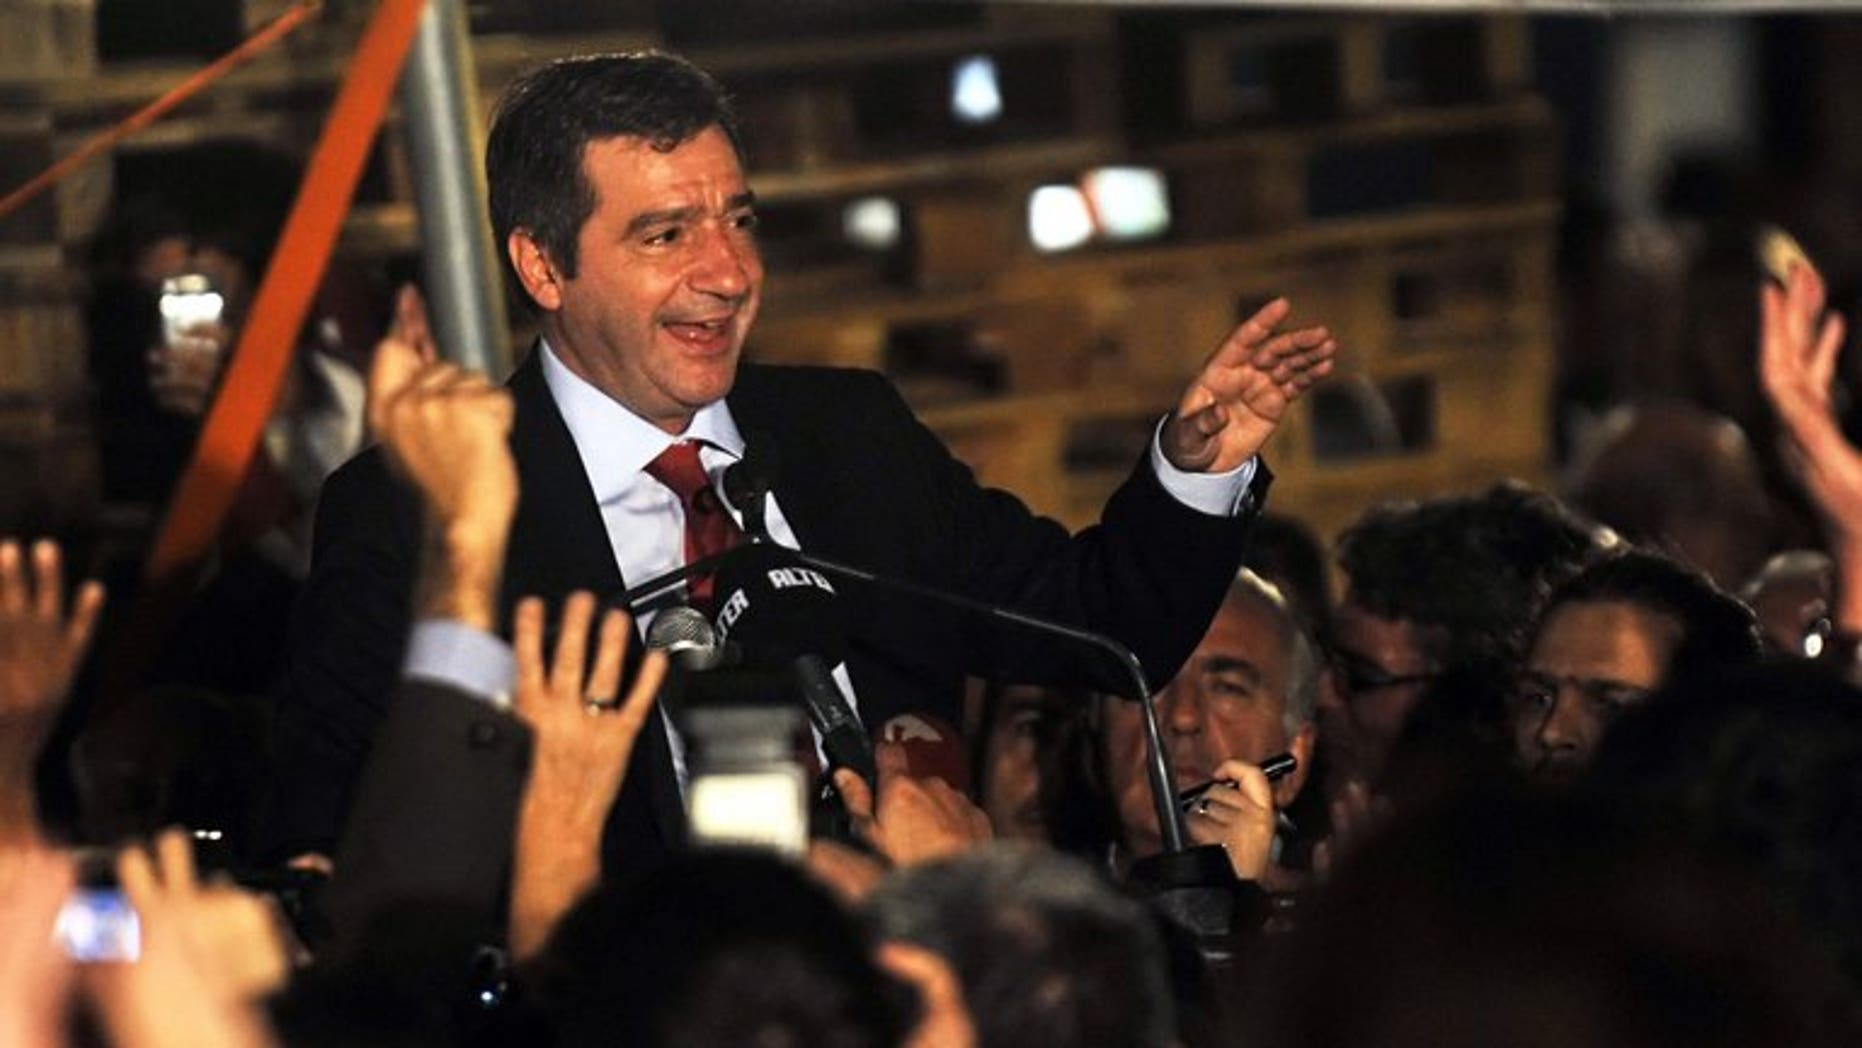 Athens Mayor George Kaminis talks to a crowd late on November 14, 2010. Kaminis was assaulted on Sunday by suspected staff unionists, his office said, amid protests over job cuts tied to Greece's bailout rescue.